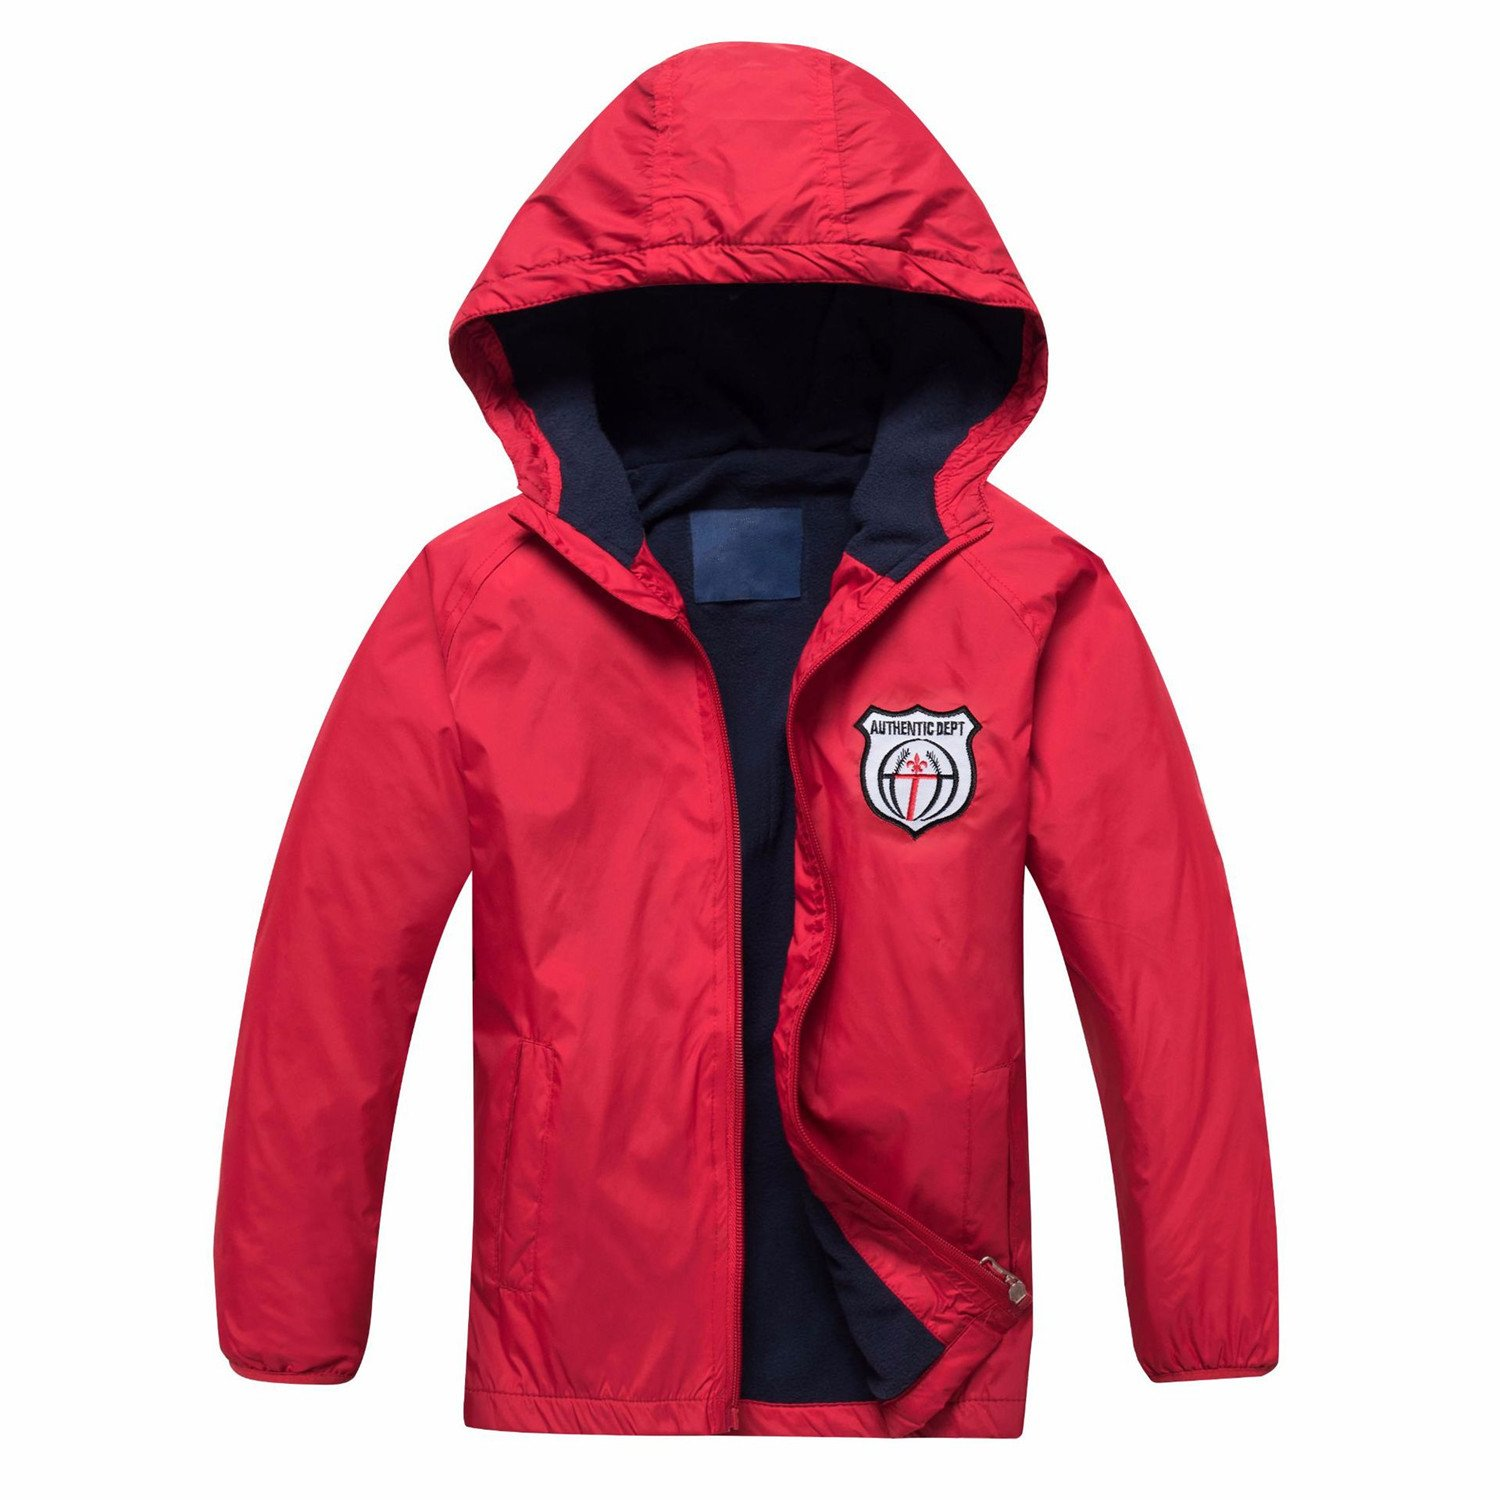 Star Flower Boys Rain Jackets Waterproof with Hood Outwear